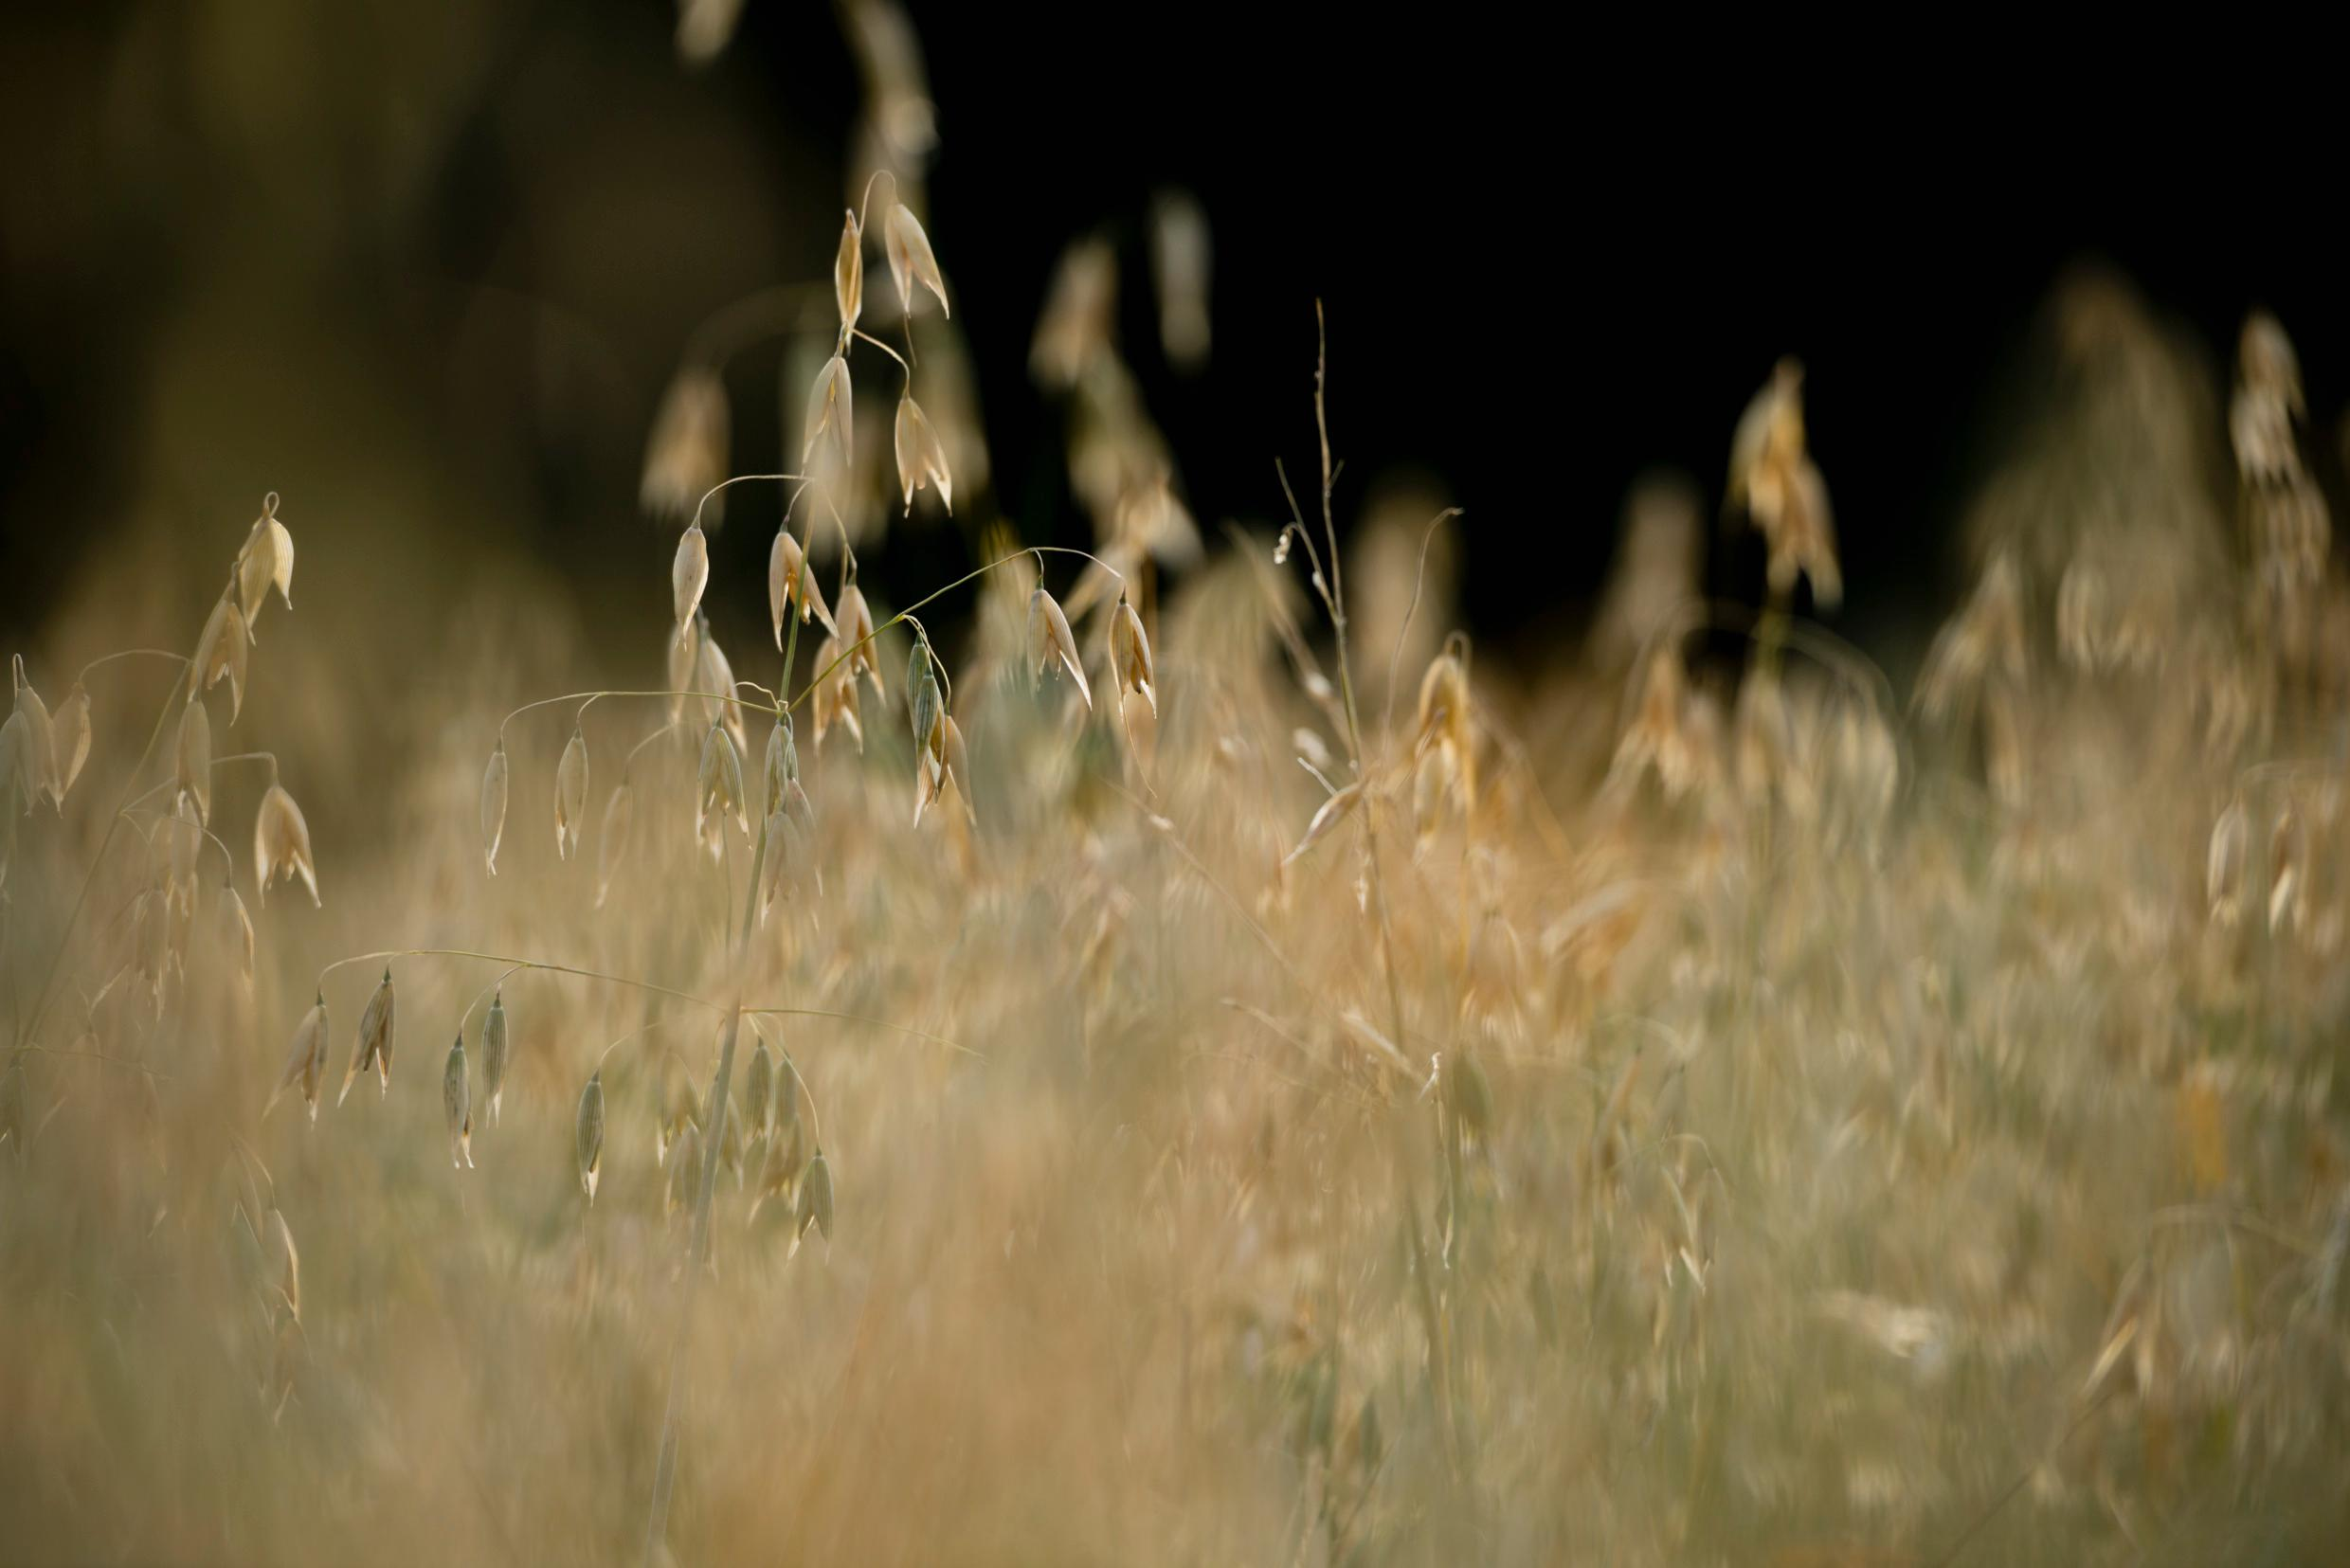 A close-up of oats in a field.